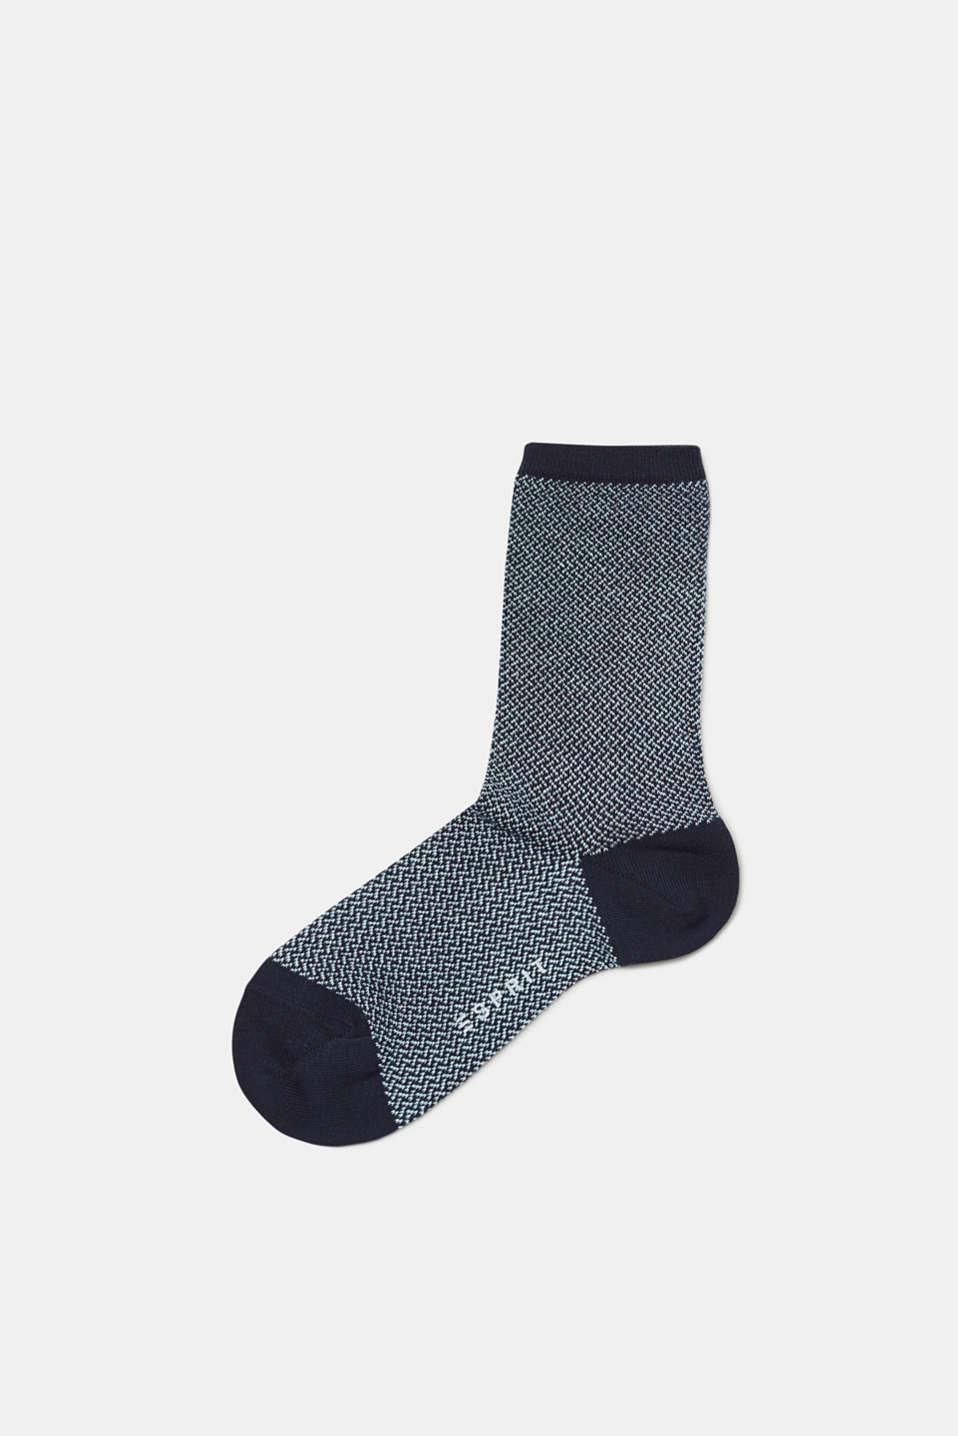 Esprit - Patterned socks in blended cotton